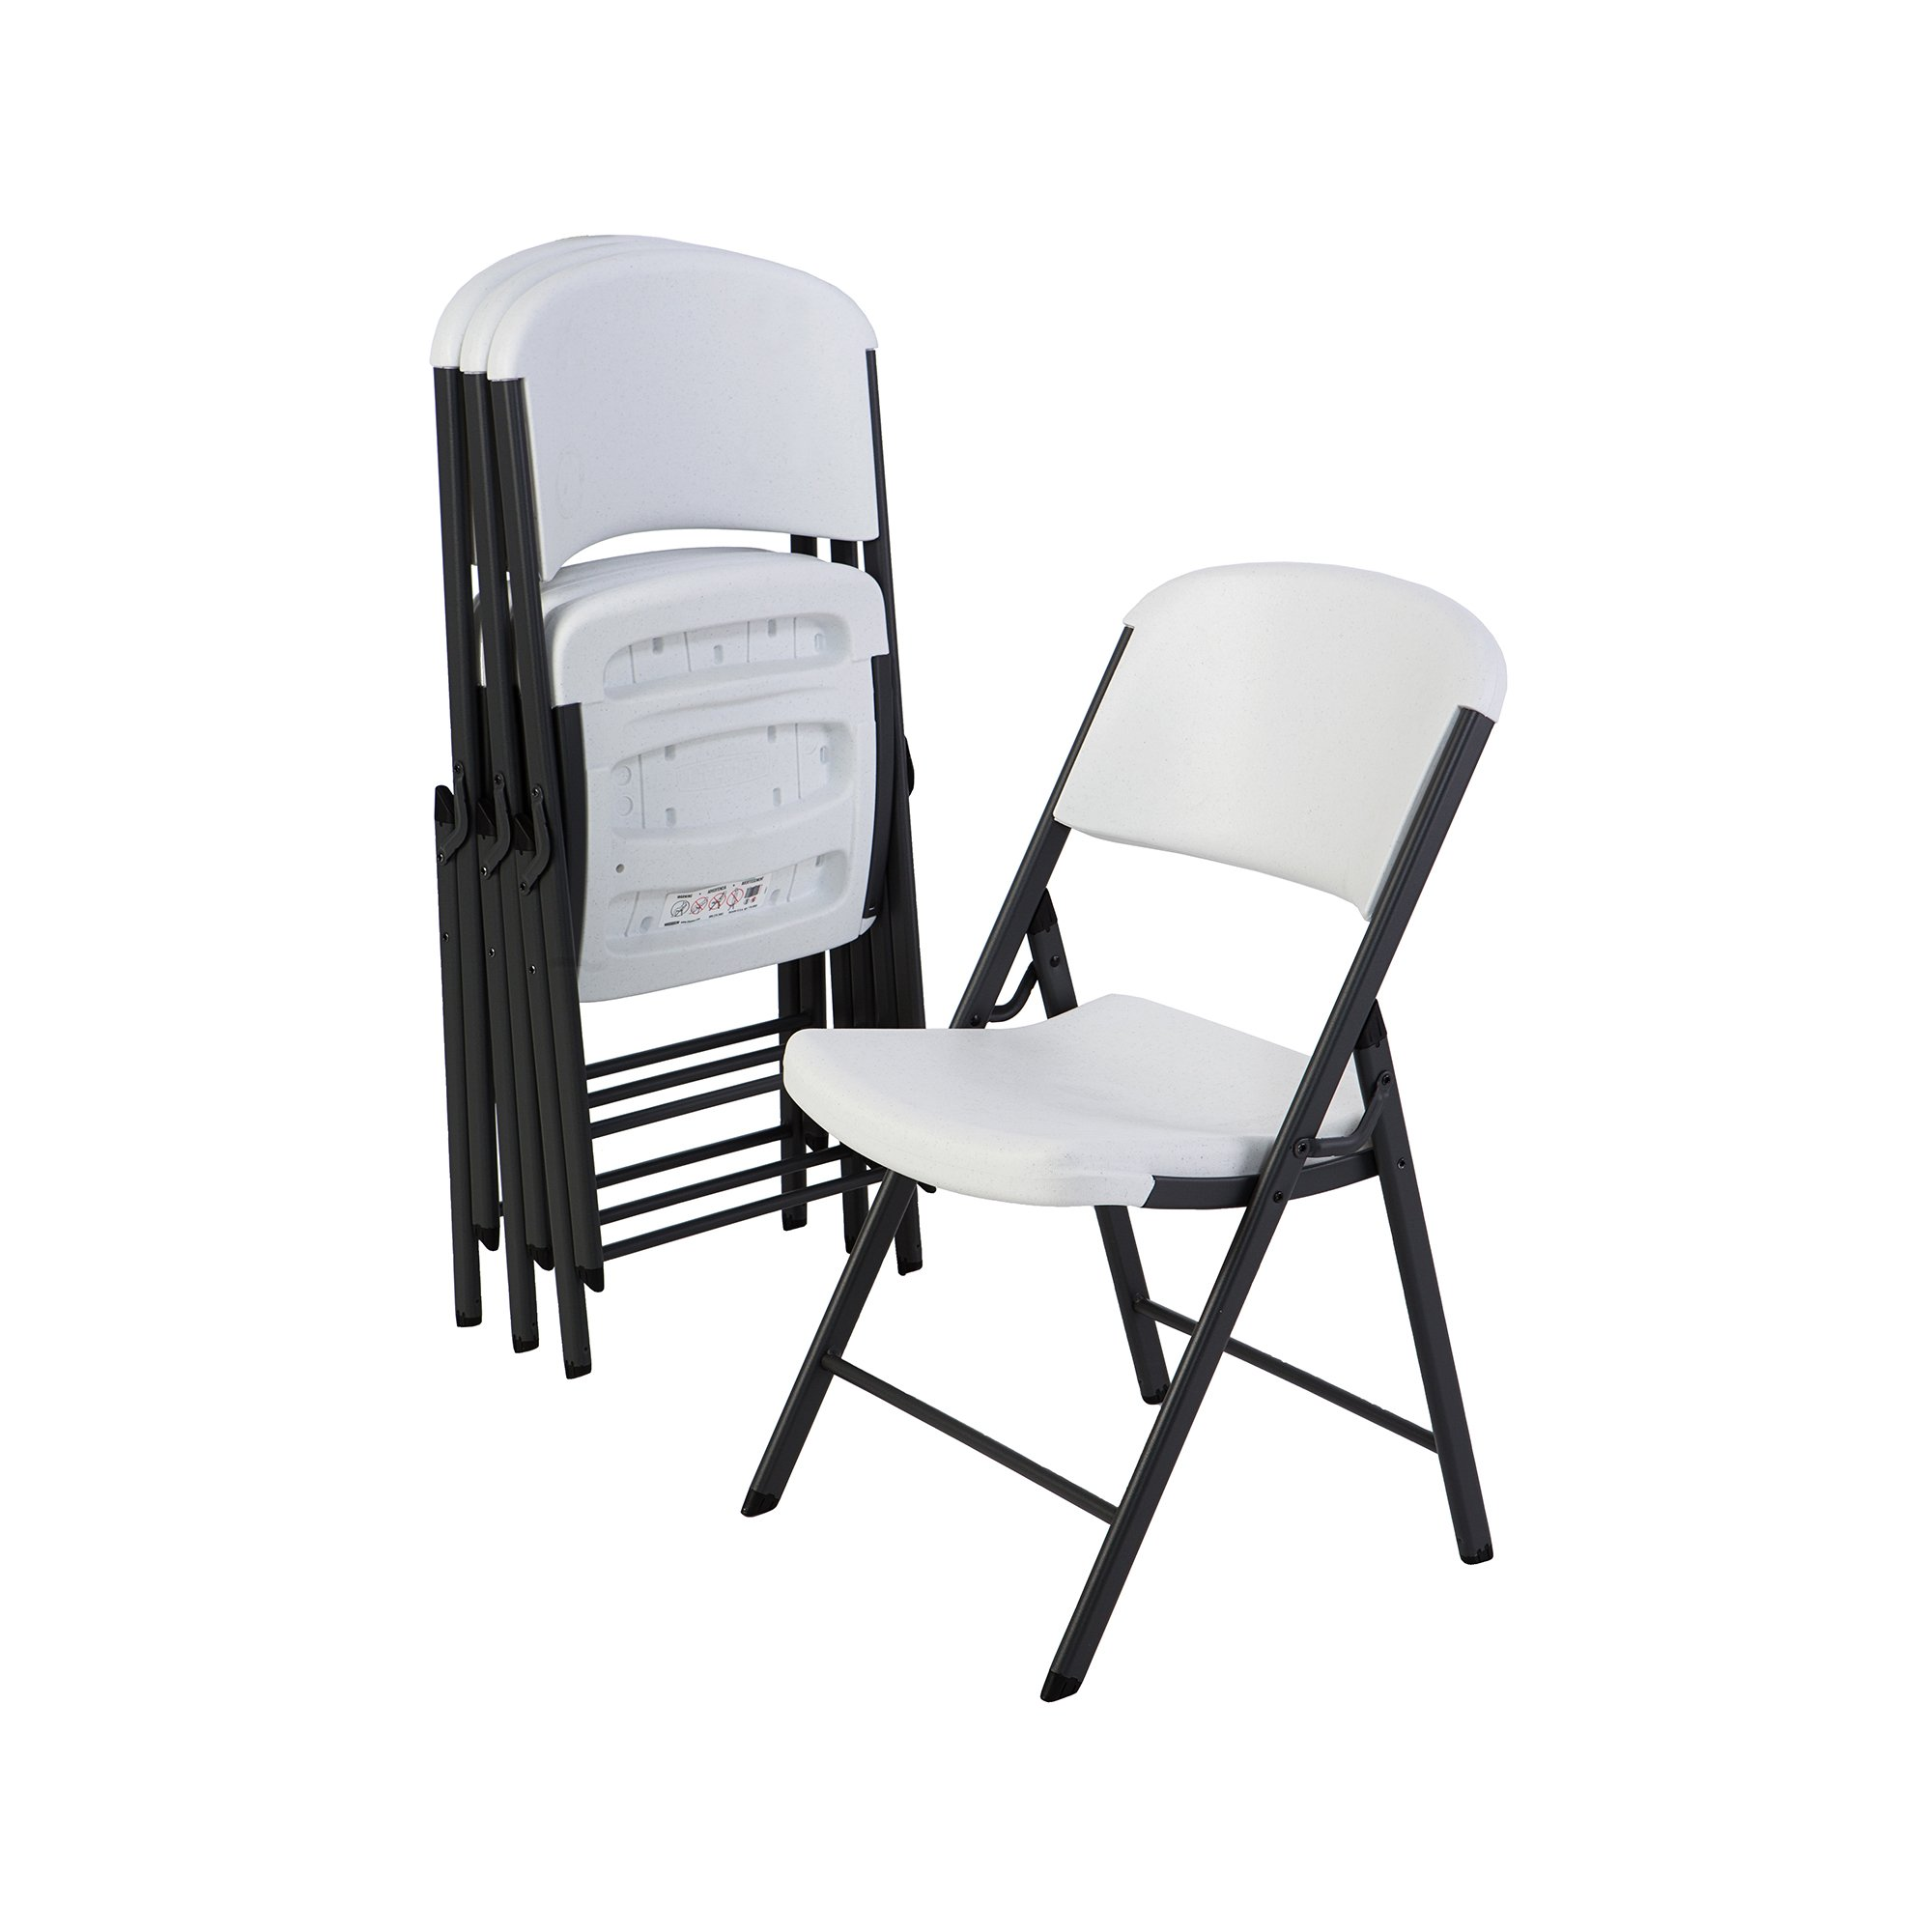 Lifetime 42804 Classic Commercial Grade Folding Chair, White Granite, 4 Pack by Lifetime